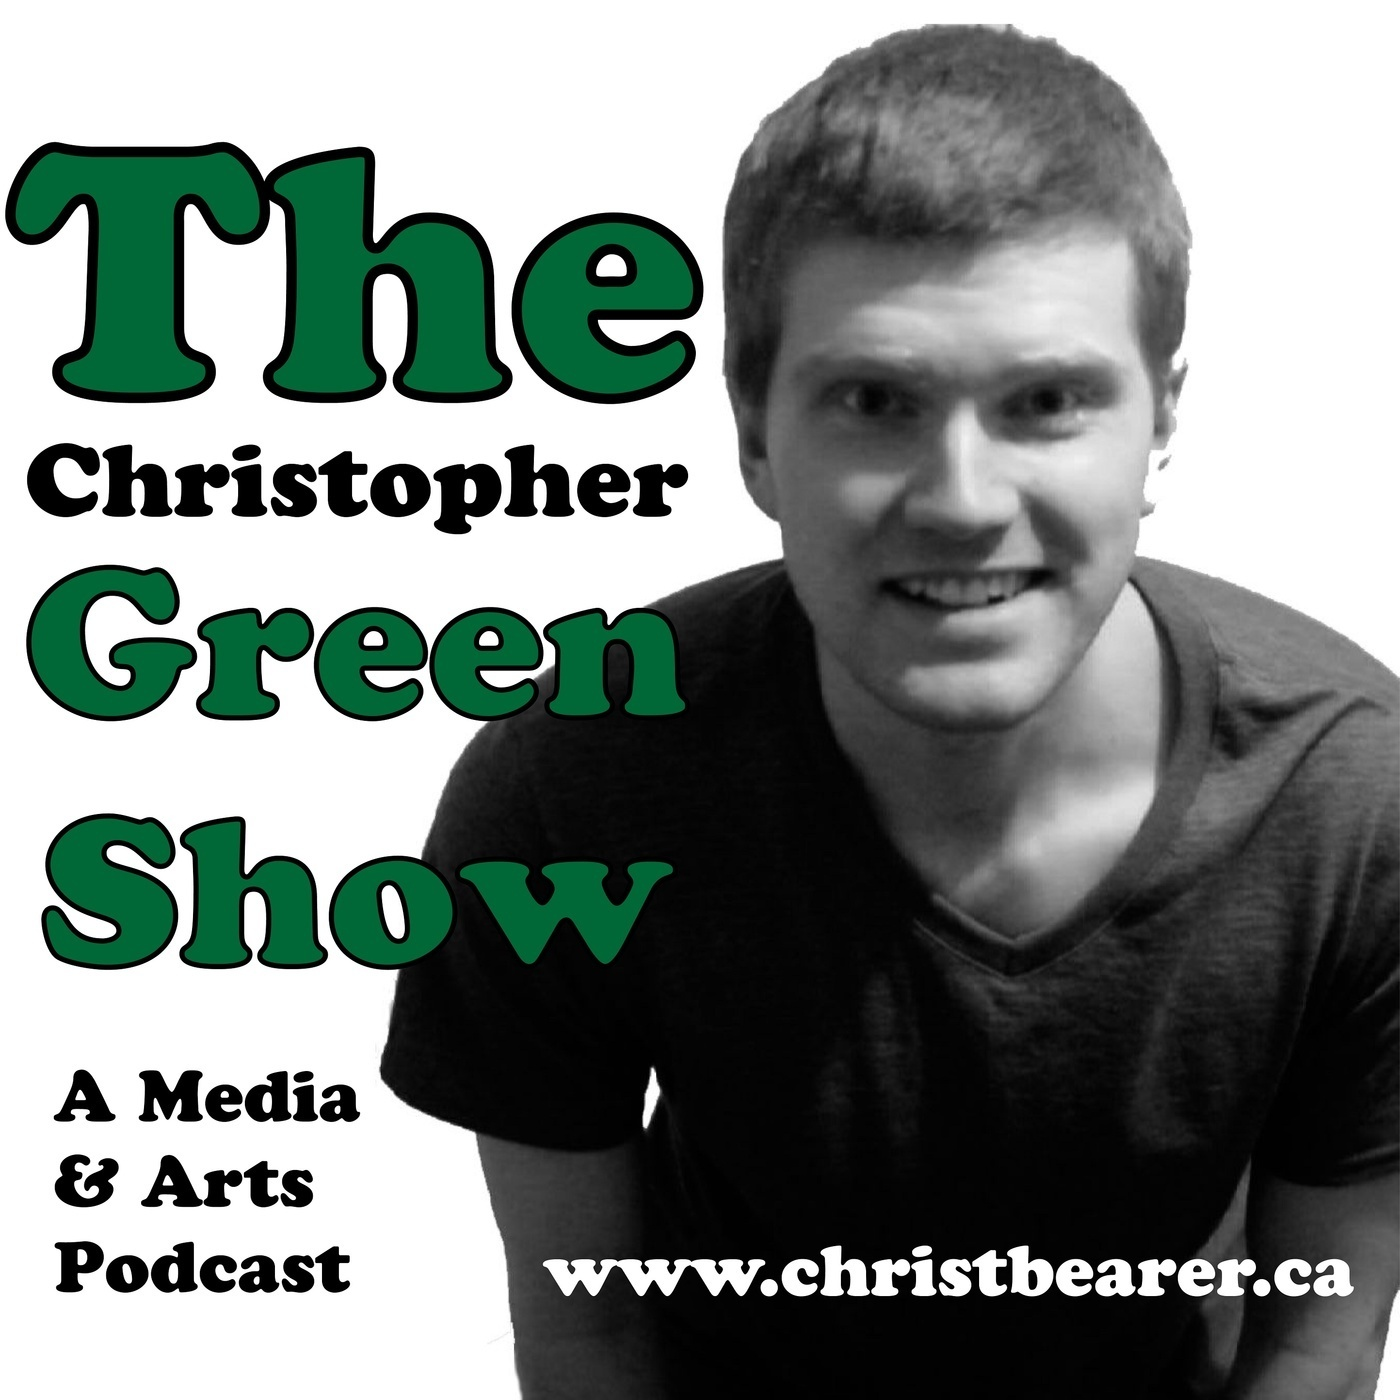 <![CDATA[The Christopher Green Show | A Media/Arts Talk Podcast]]>